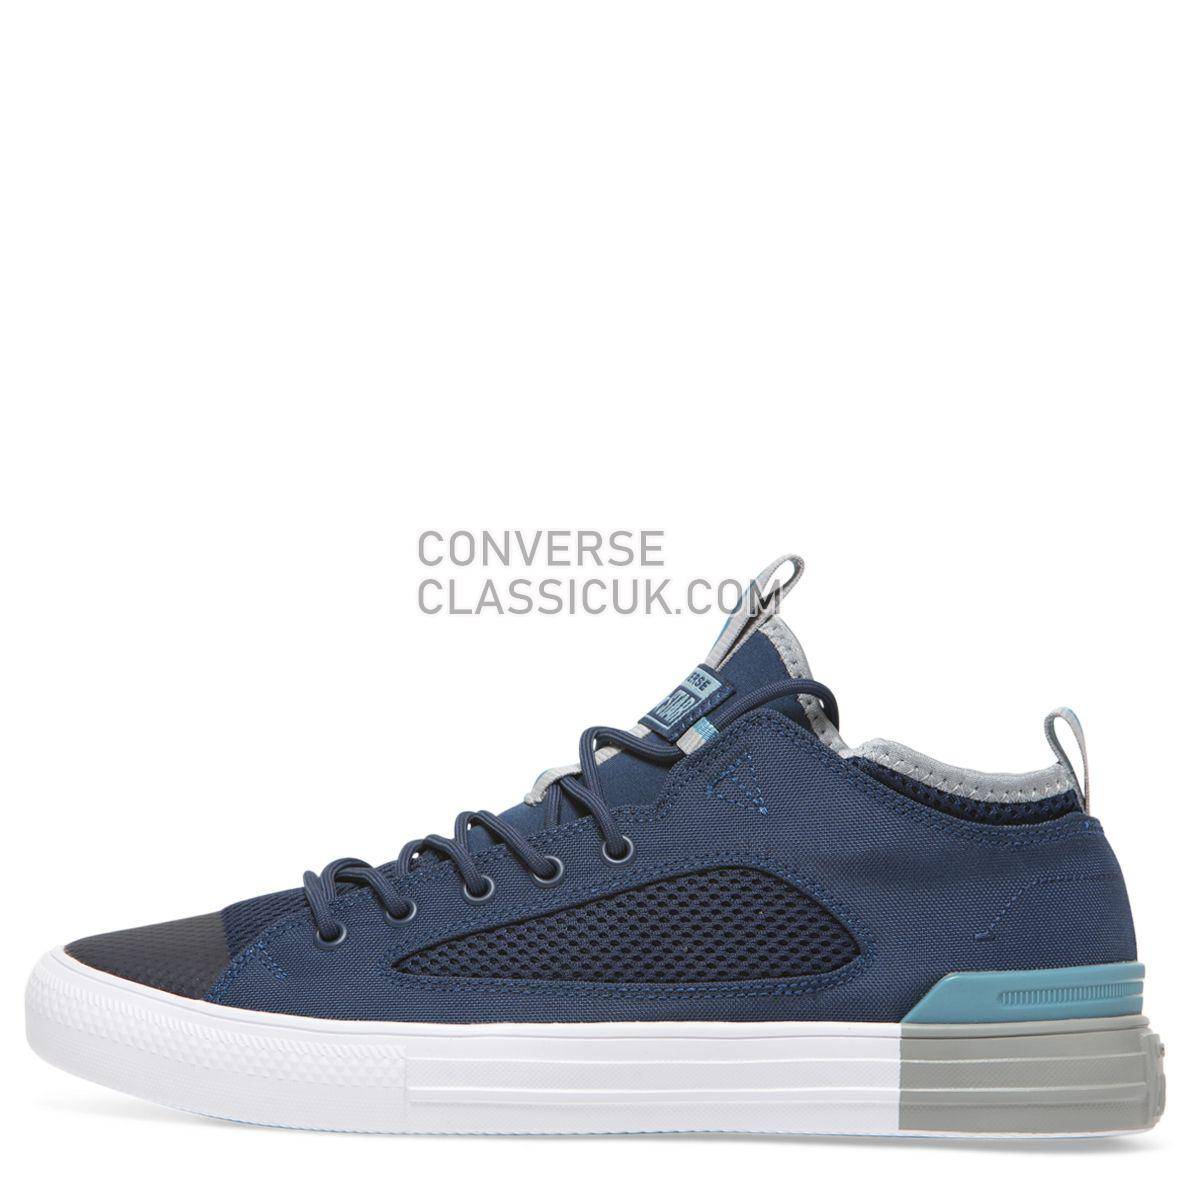 Converse Chuck Taylor All Star Ultra Colour Block Mesh Low Top Navy Mens Womens Unisex 160484 Navy/Wolf Grey/Shoreline Blue Shoes